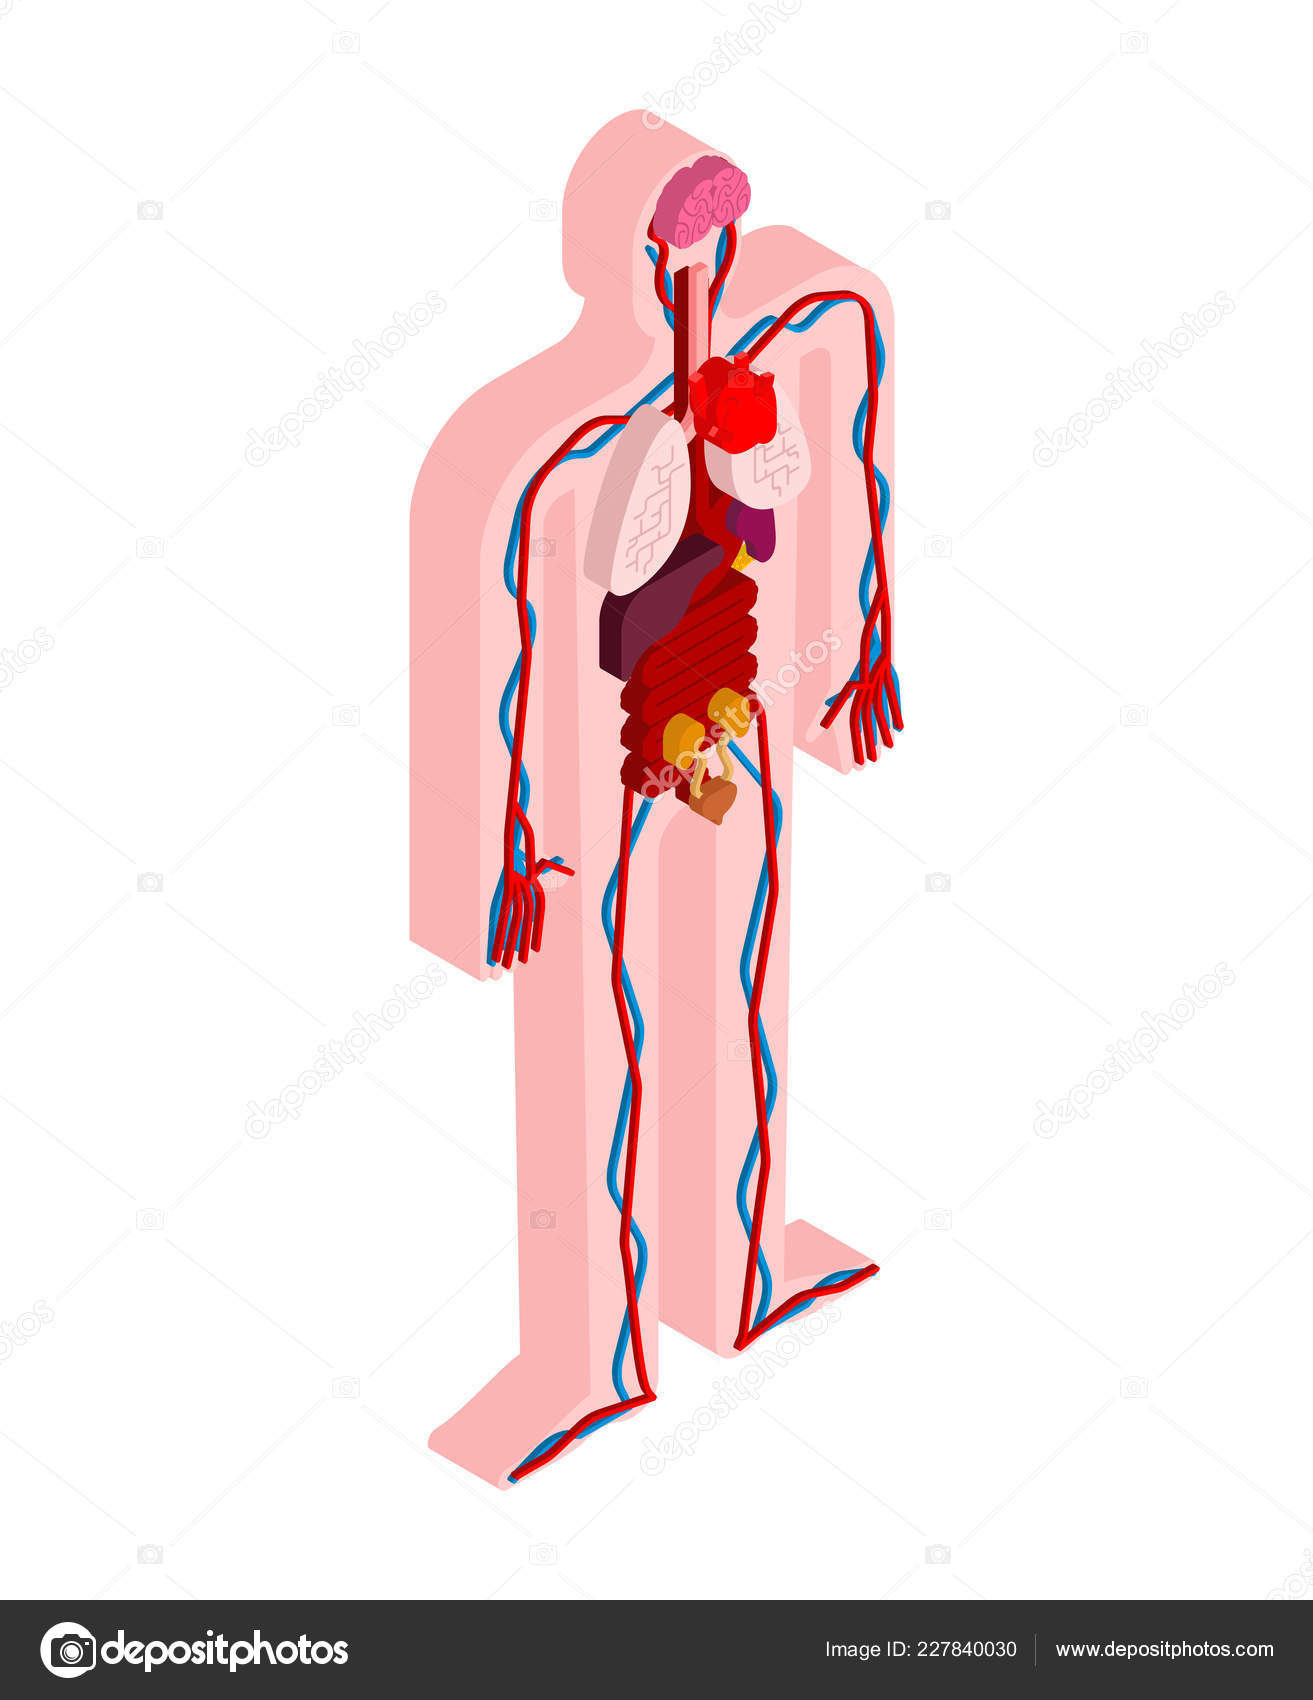 Human Anatomy Body Isometric Internal Organs Organ Systems Body